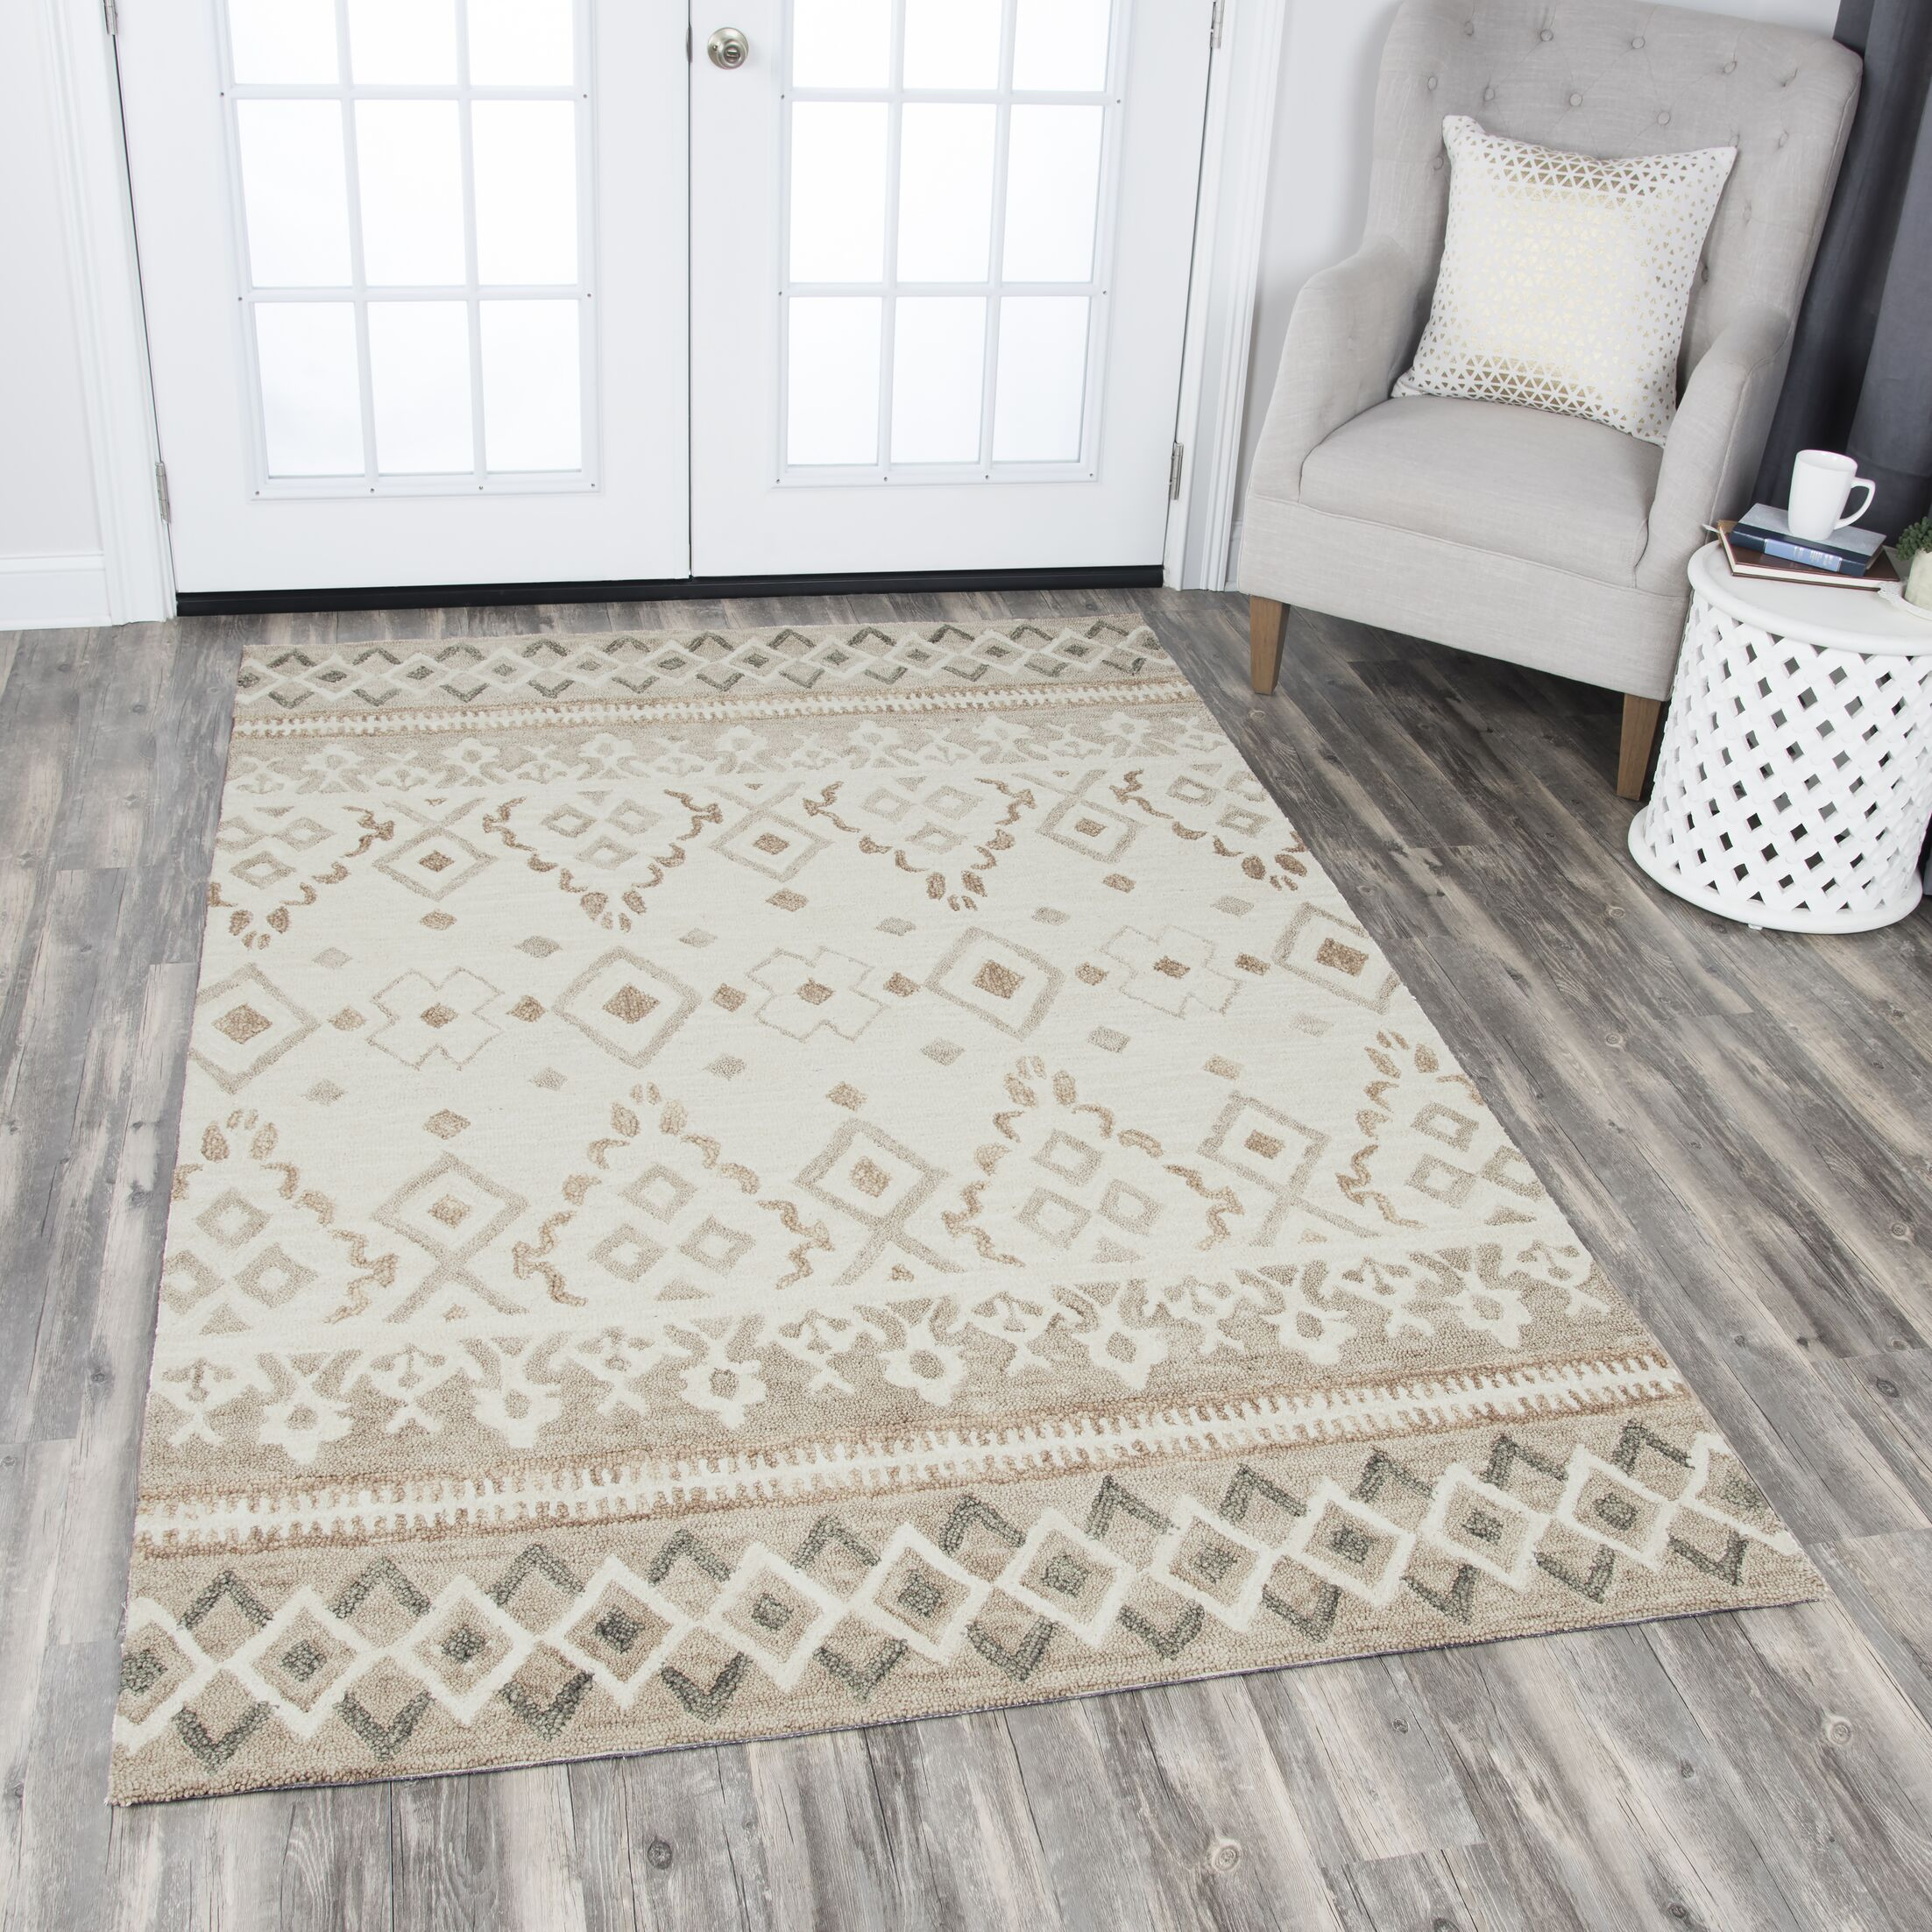 Sorensen Hand-Tufted Natural Area Rug Rug Size: Rectangle 8' x 10'